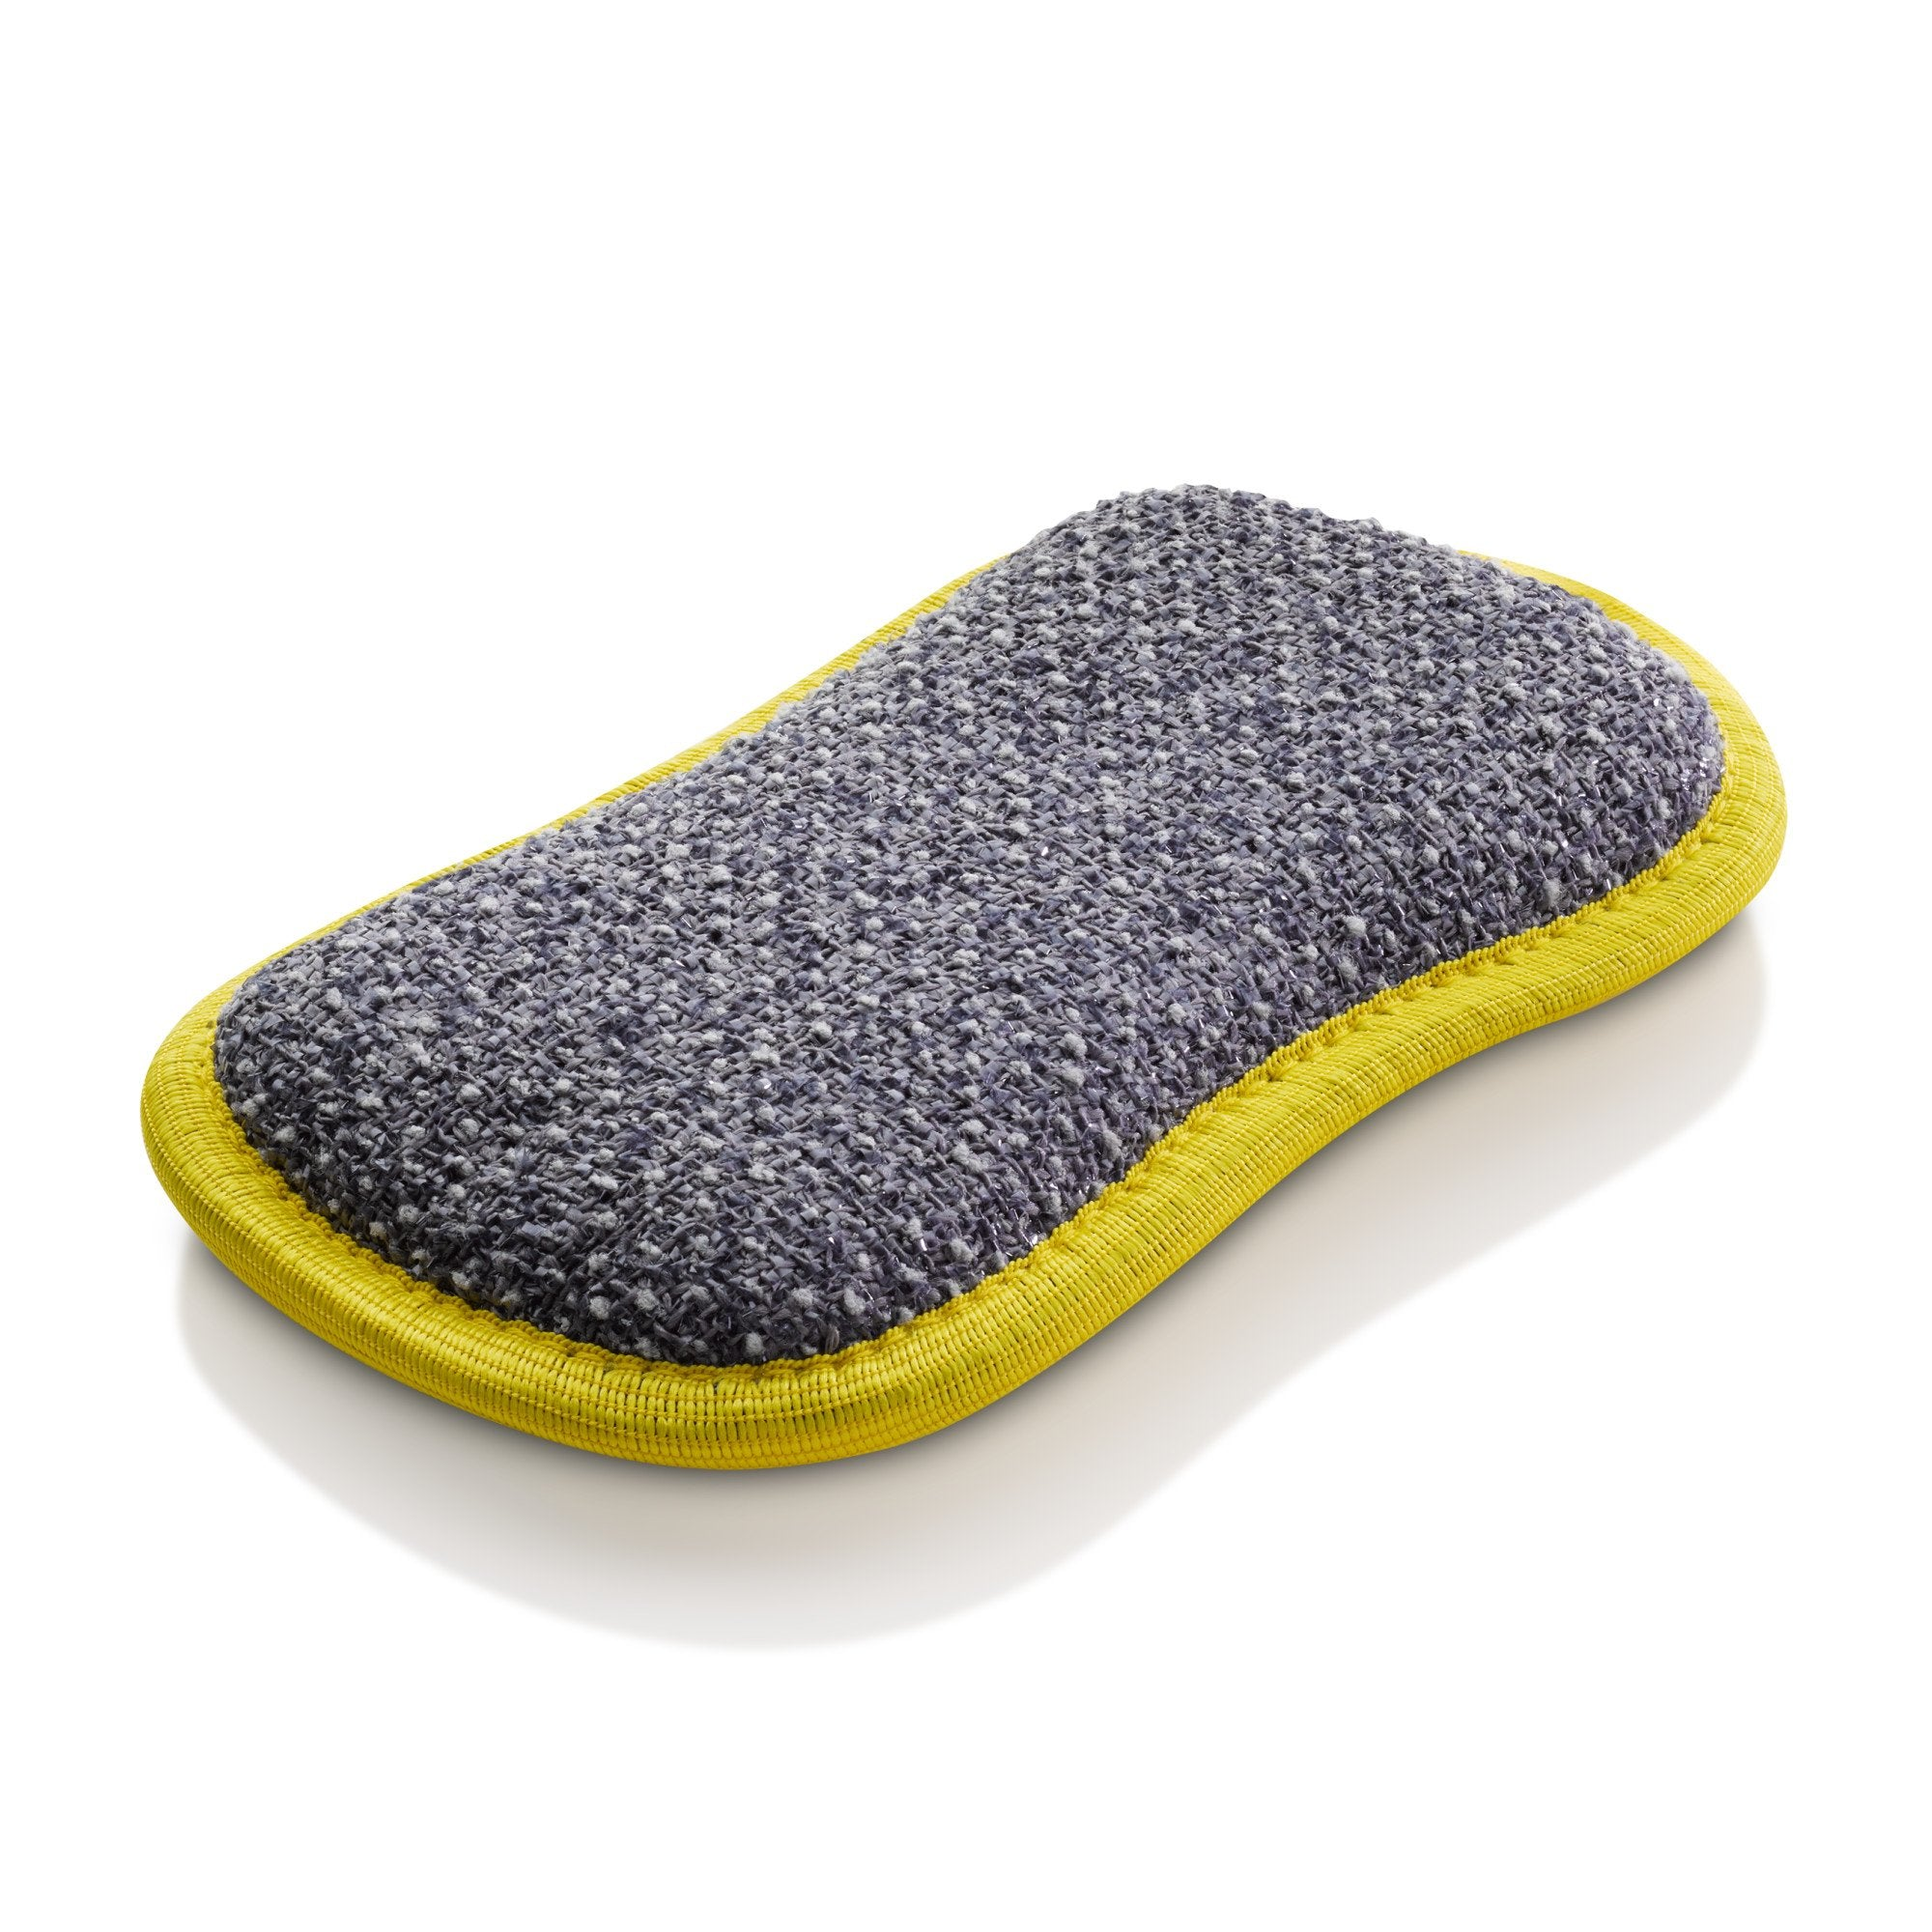 E-Cloth Washing Up Pad $14.99